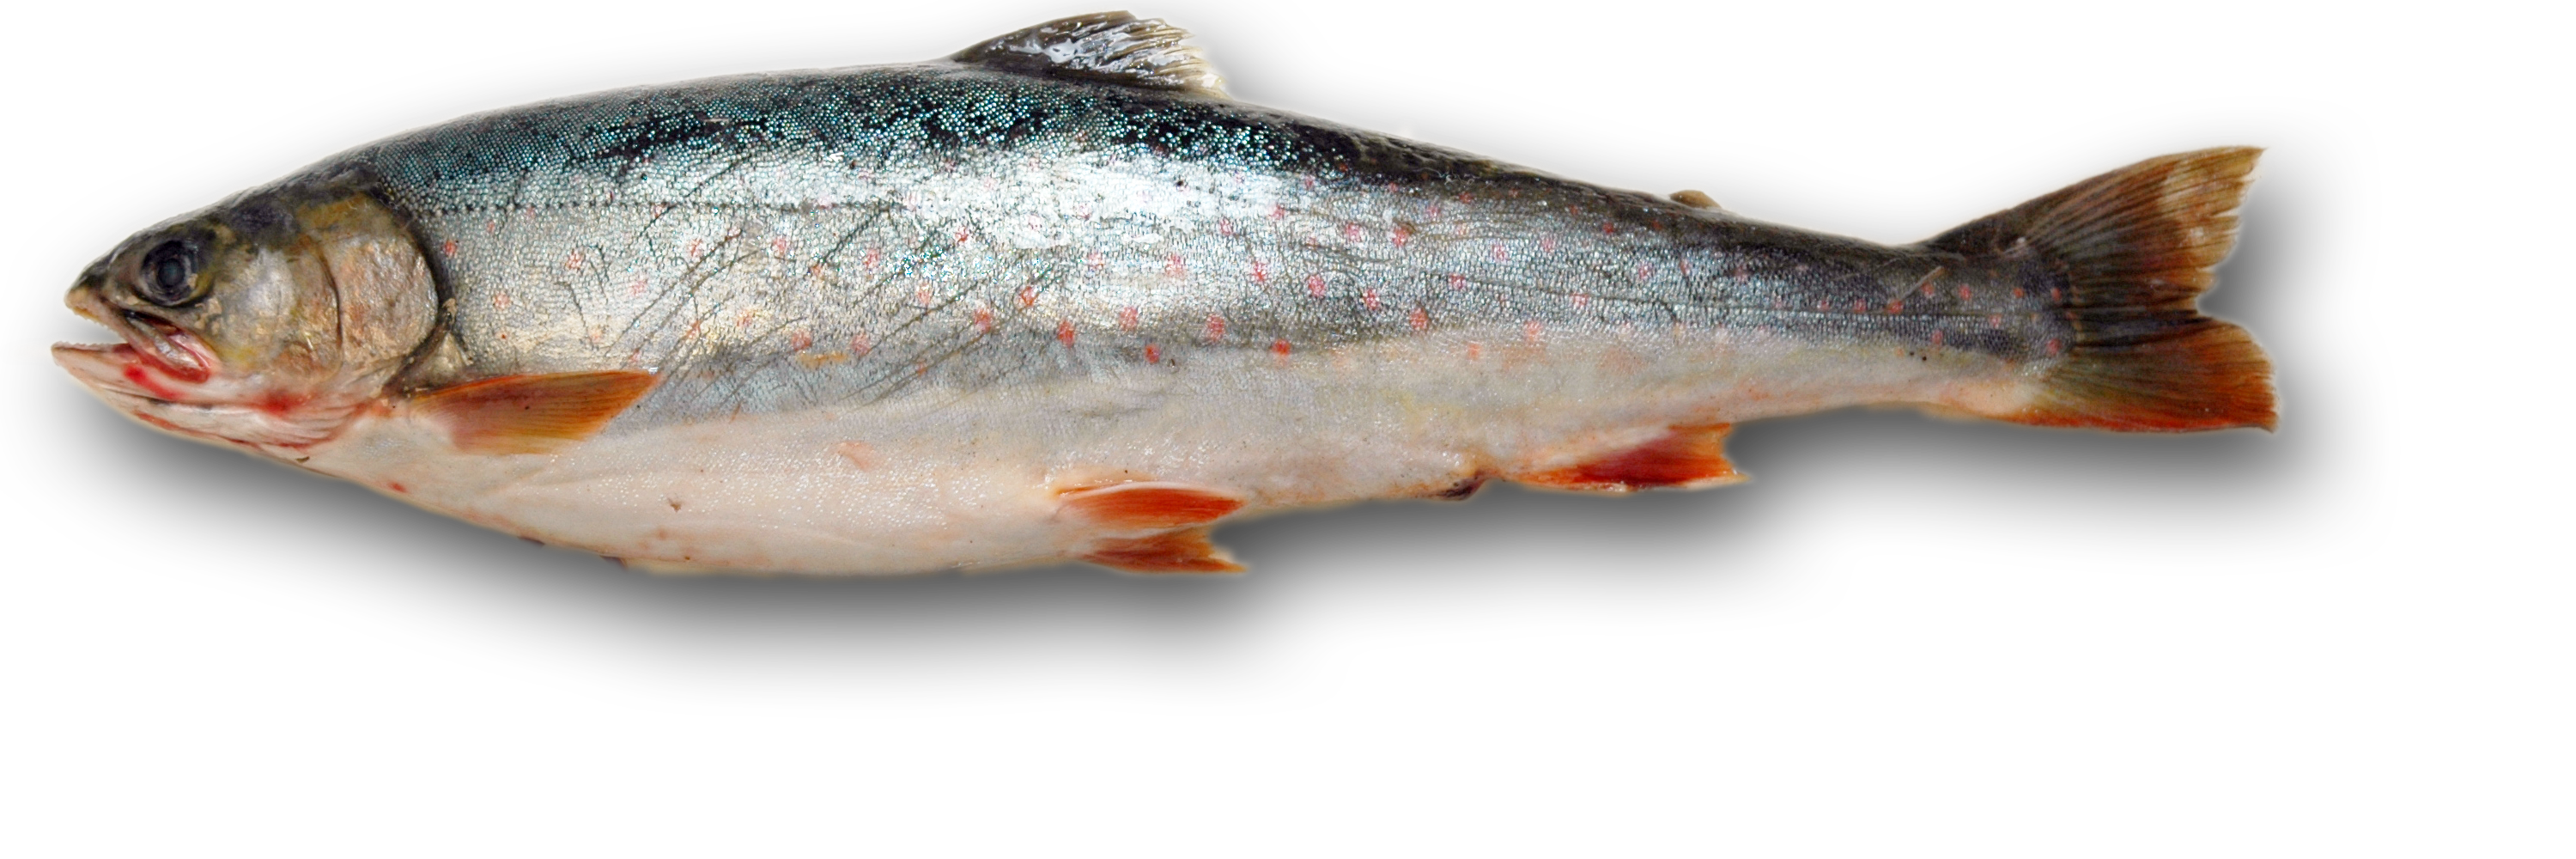 Salmon fish png. Fishing transparent pictures free